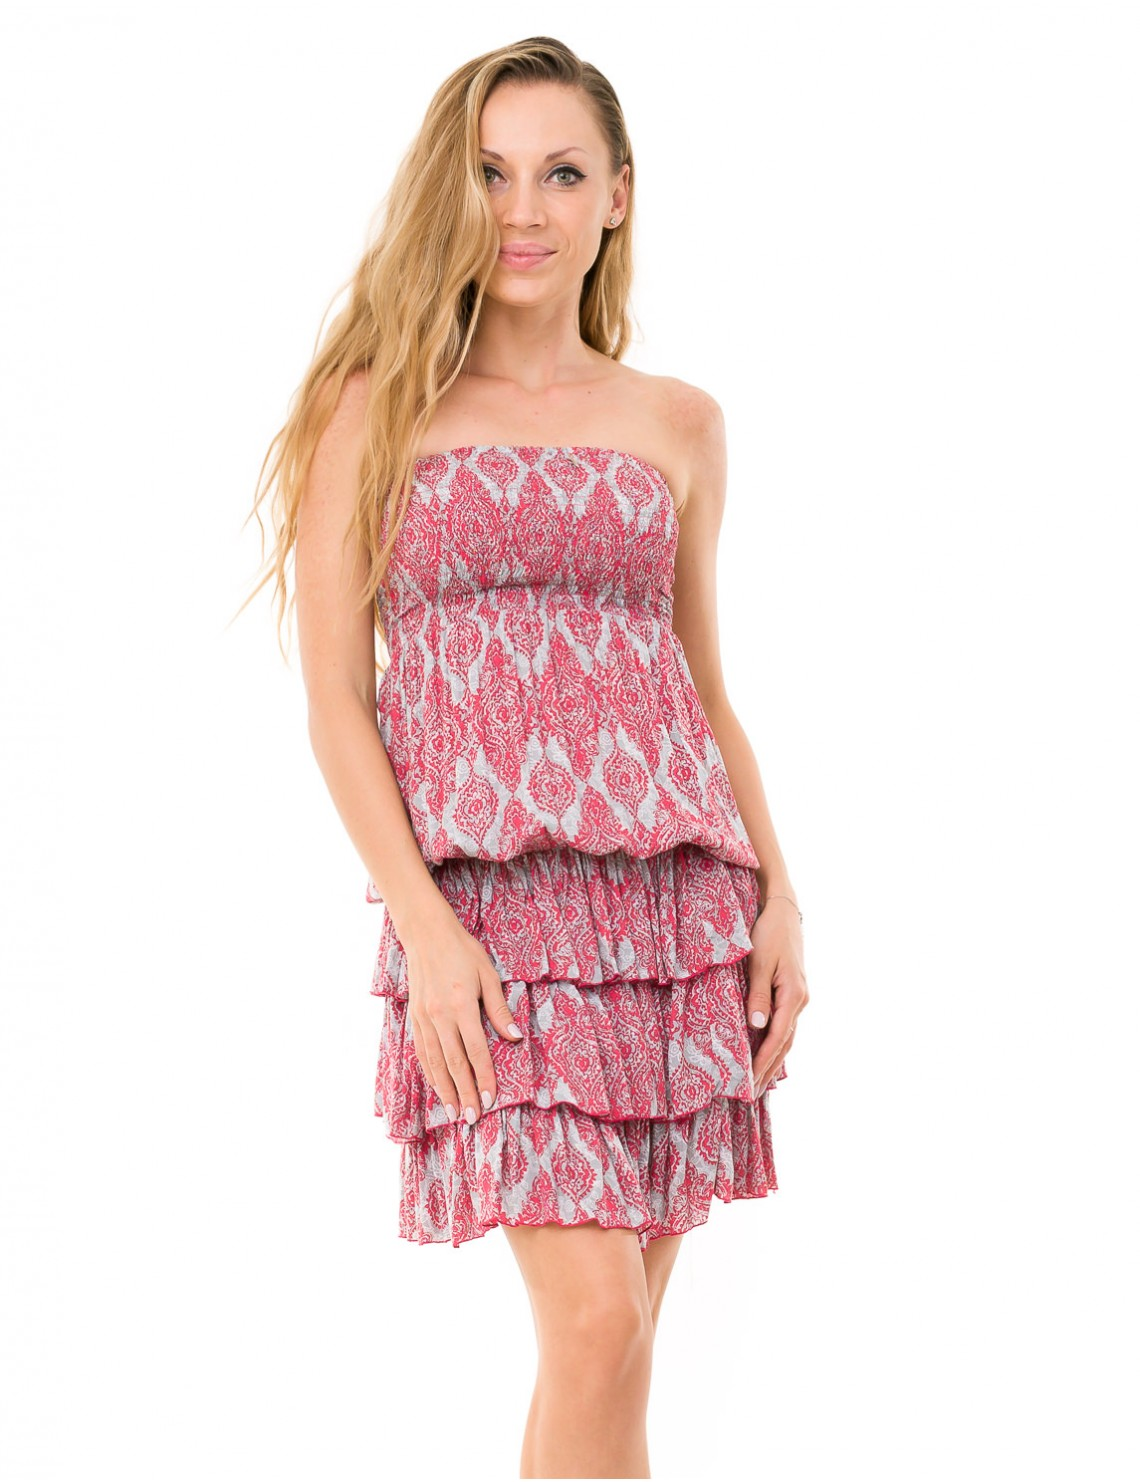 Mia Dress - Jaspal Watermelon